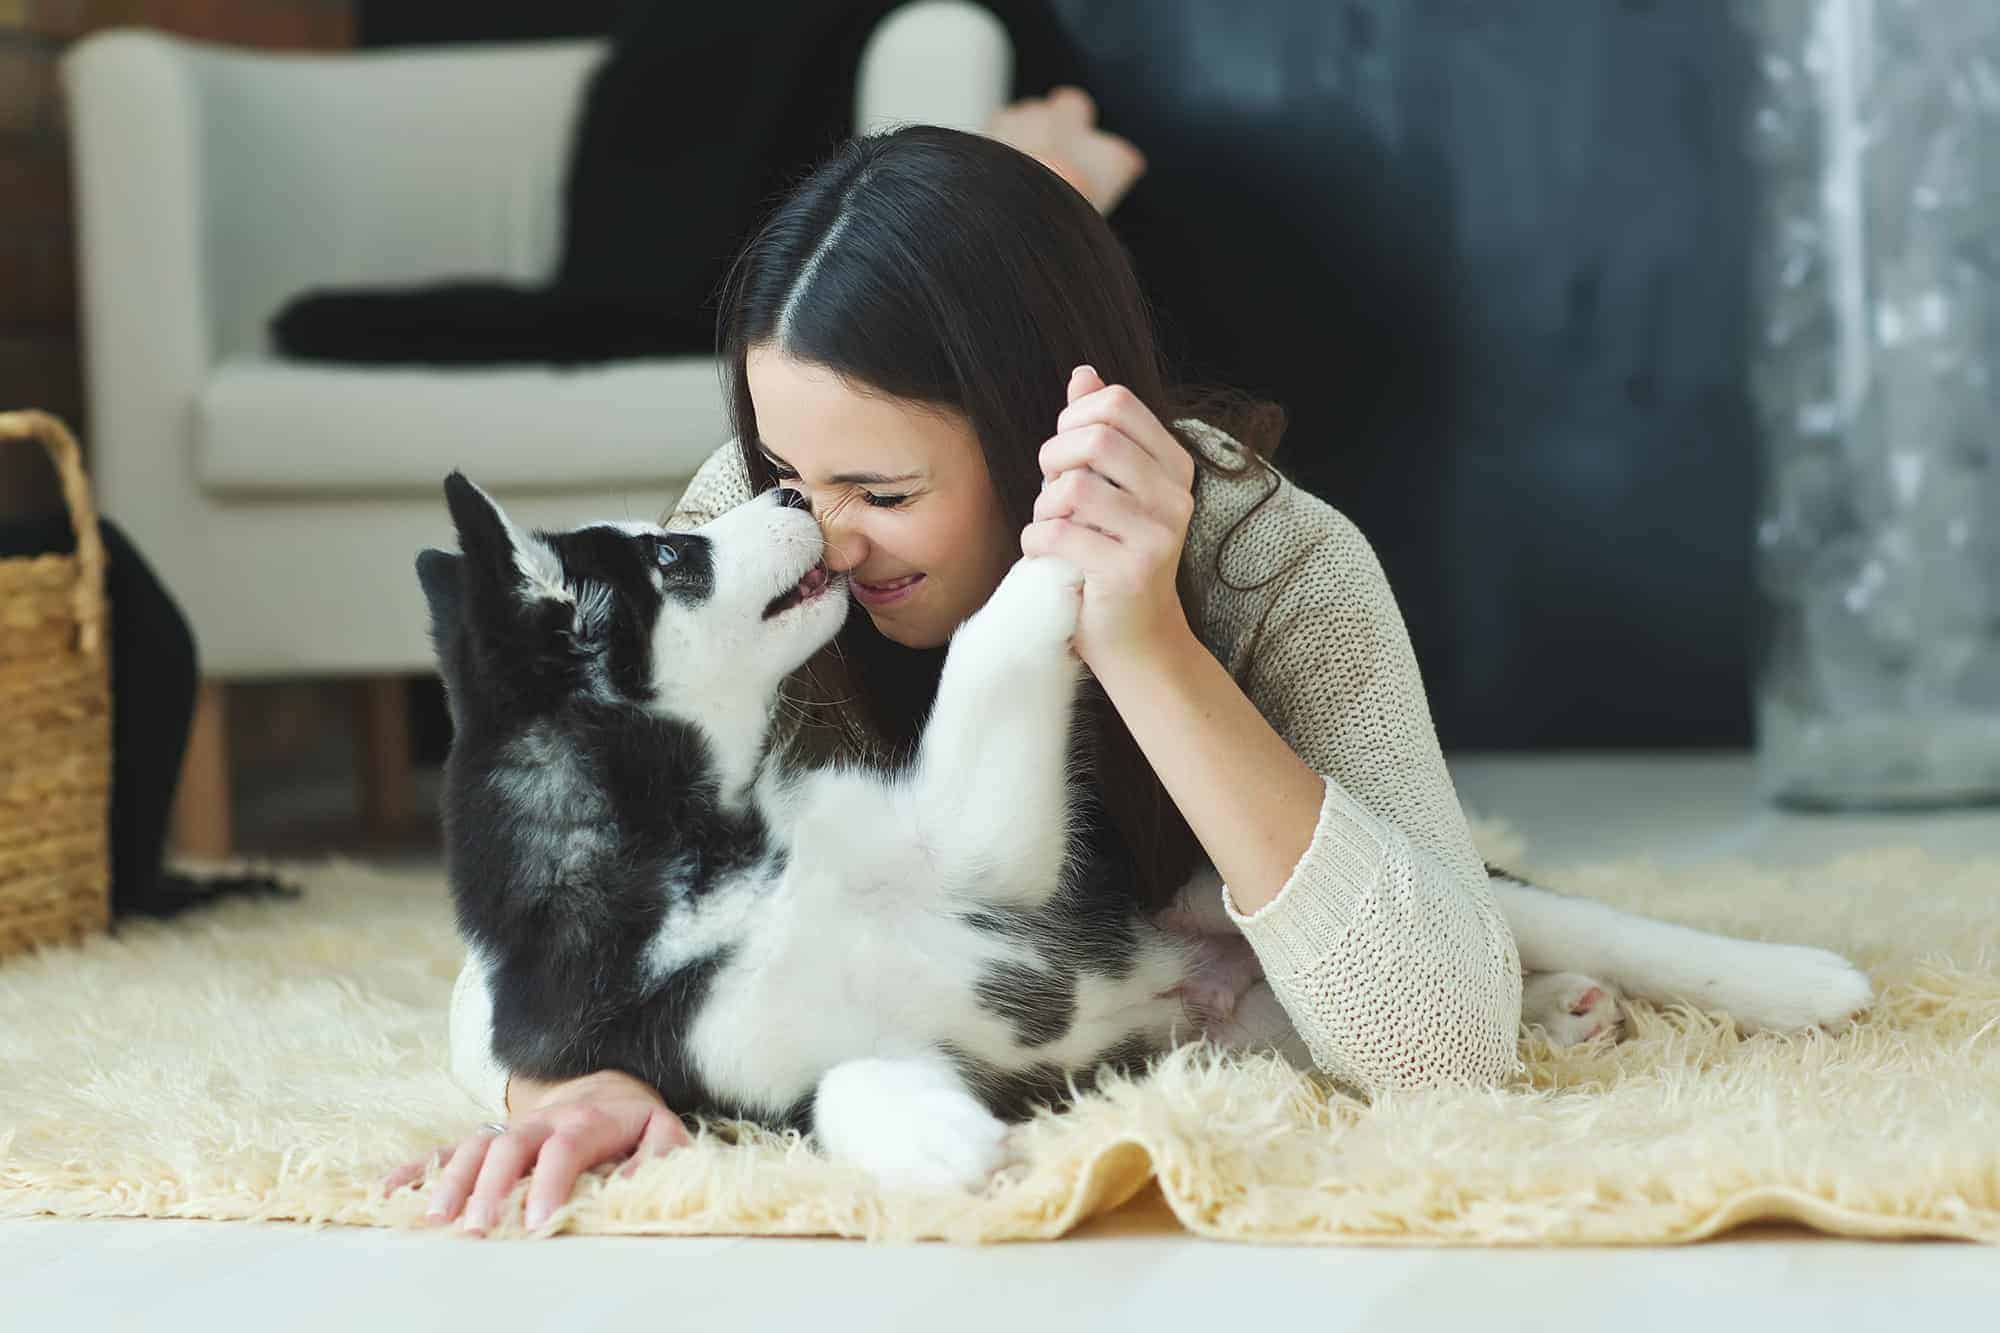 How Are Pets Helping Us Through the Pandemic?